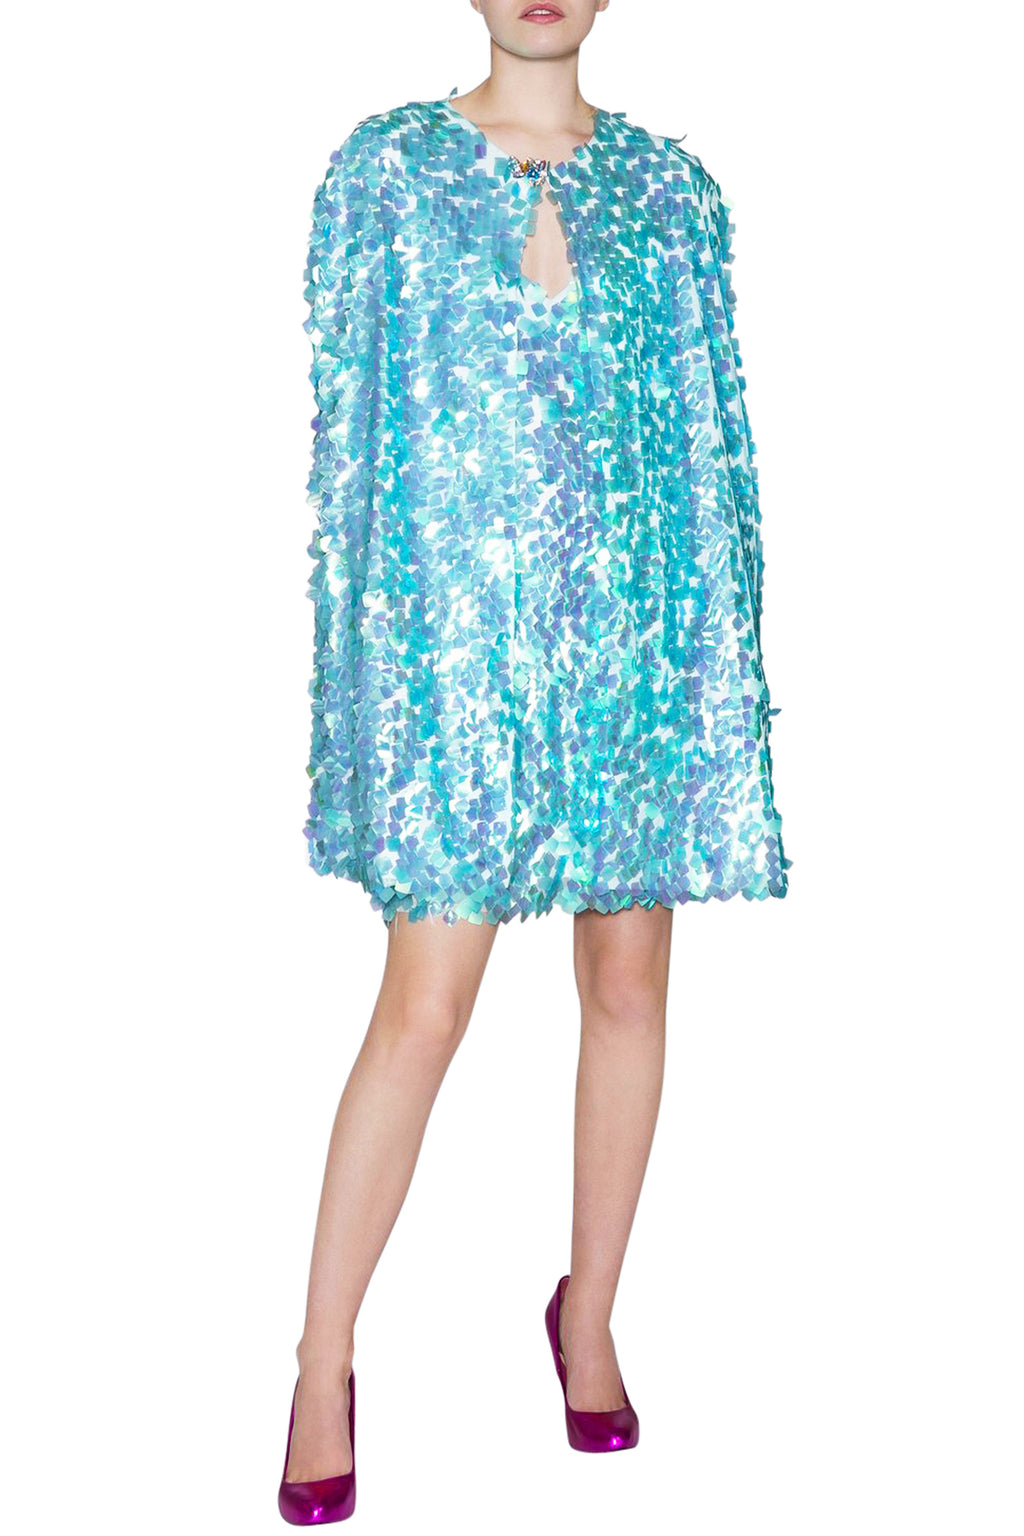 Ilona Rich Iridescent Sequin Cape to complete the look.